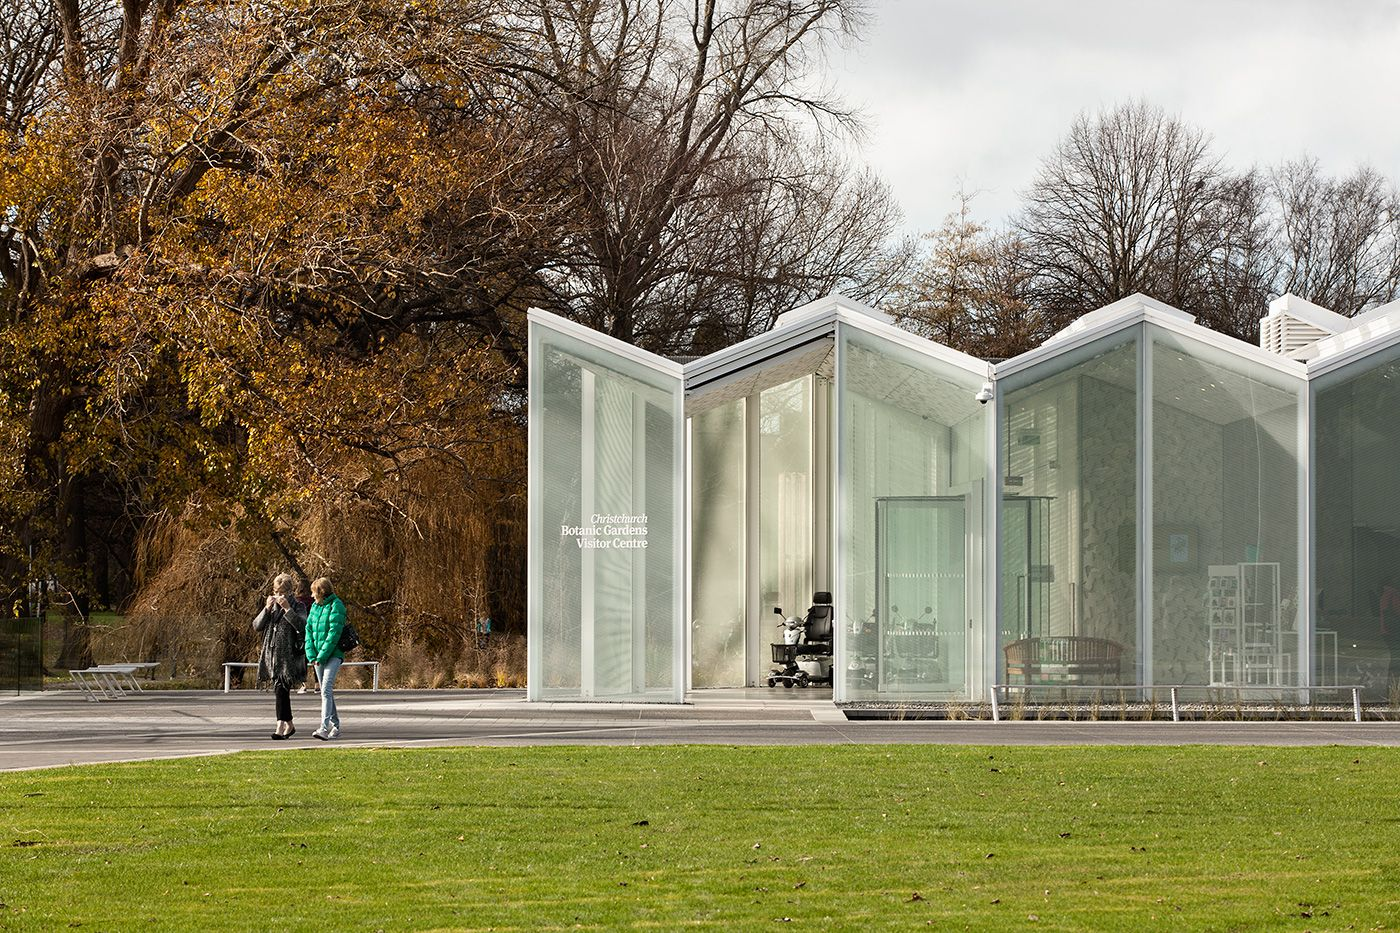 Christchurch Botanic Gardens Visitor Centre. Photograph By